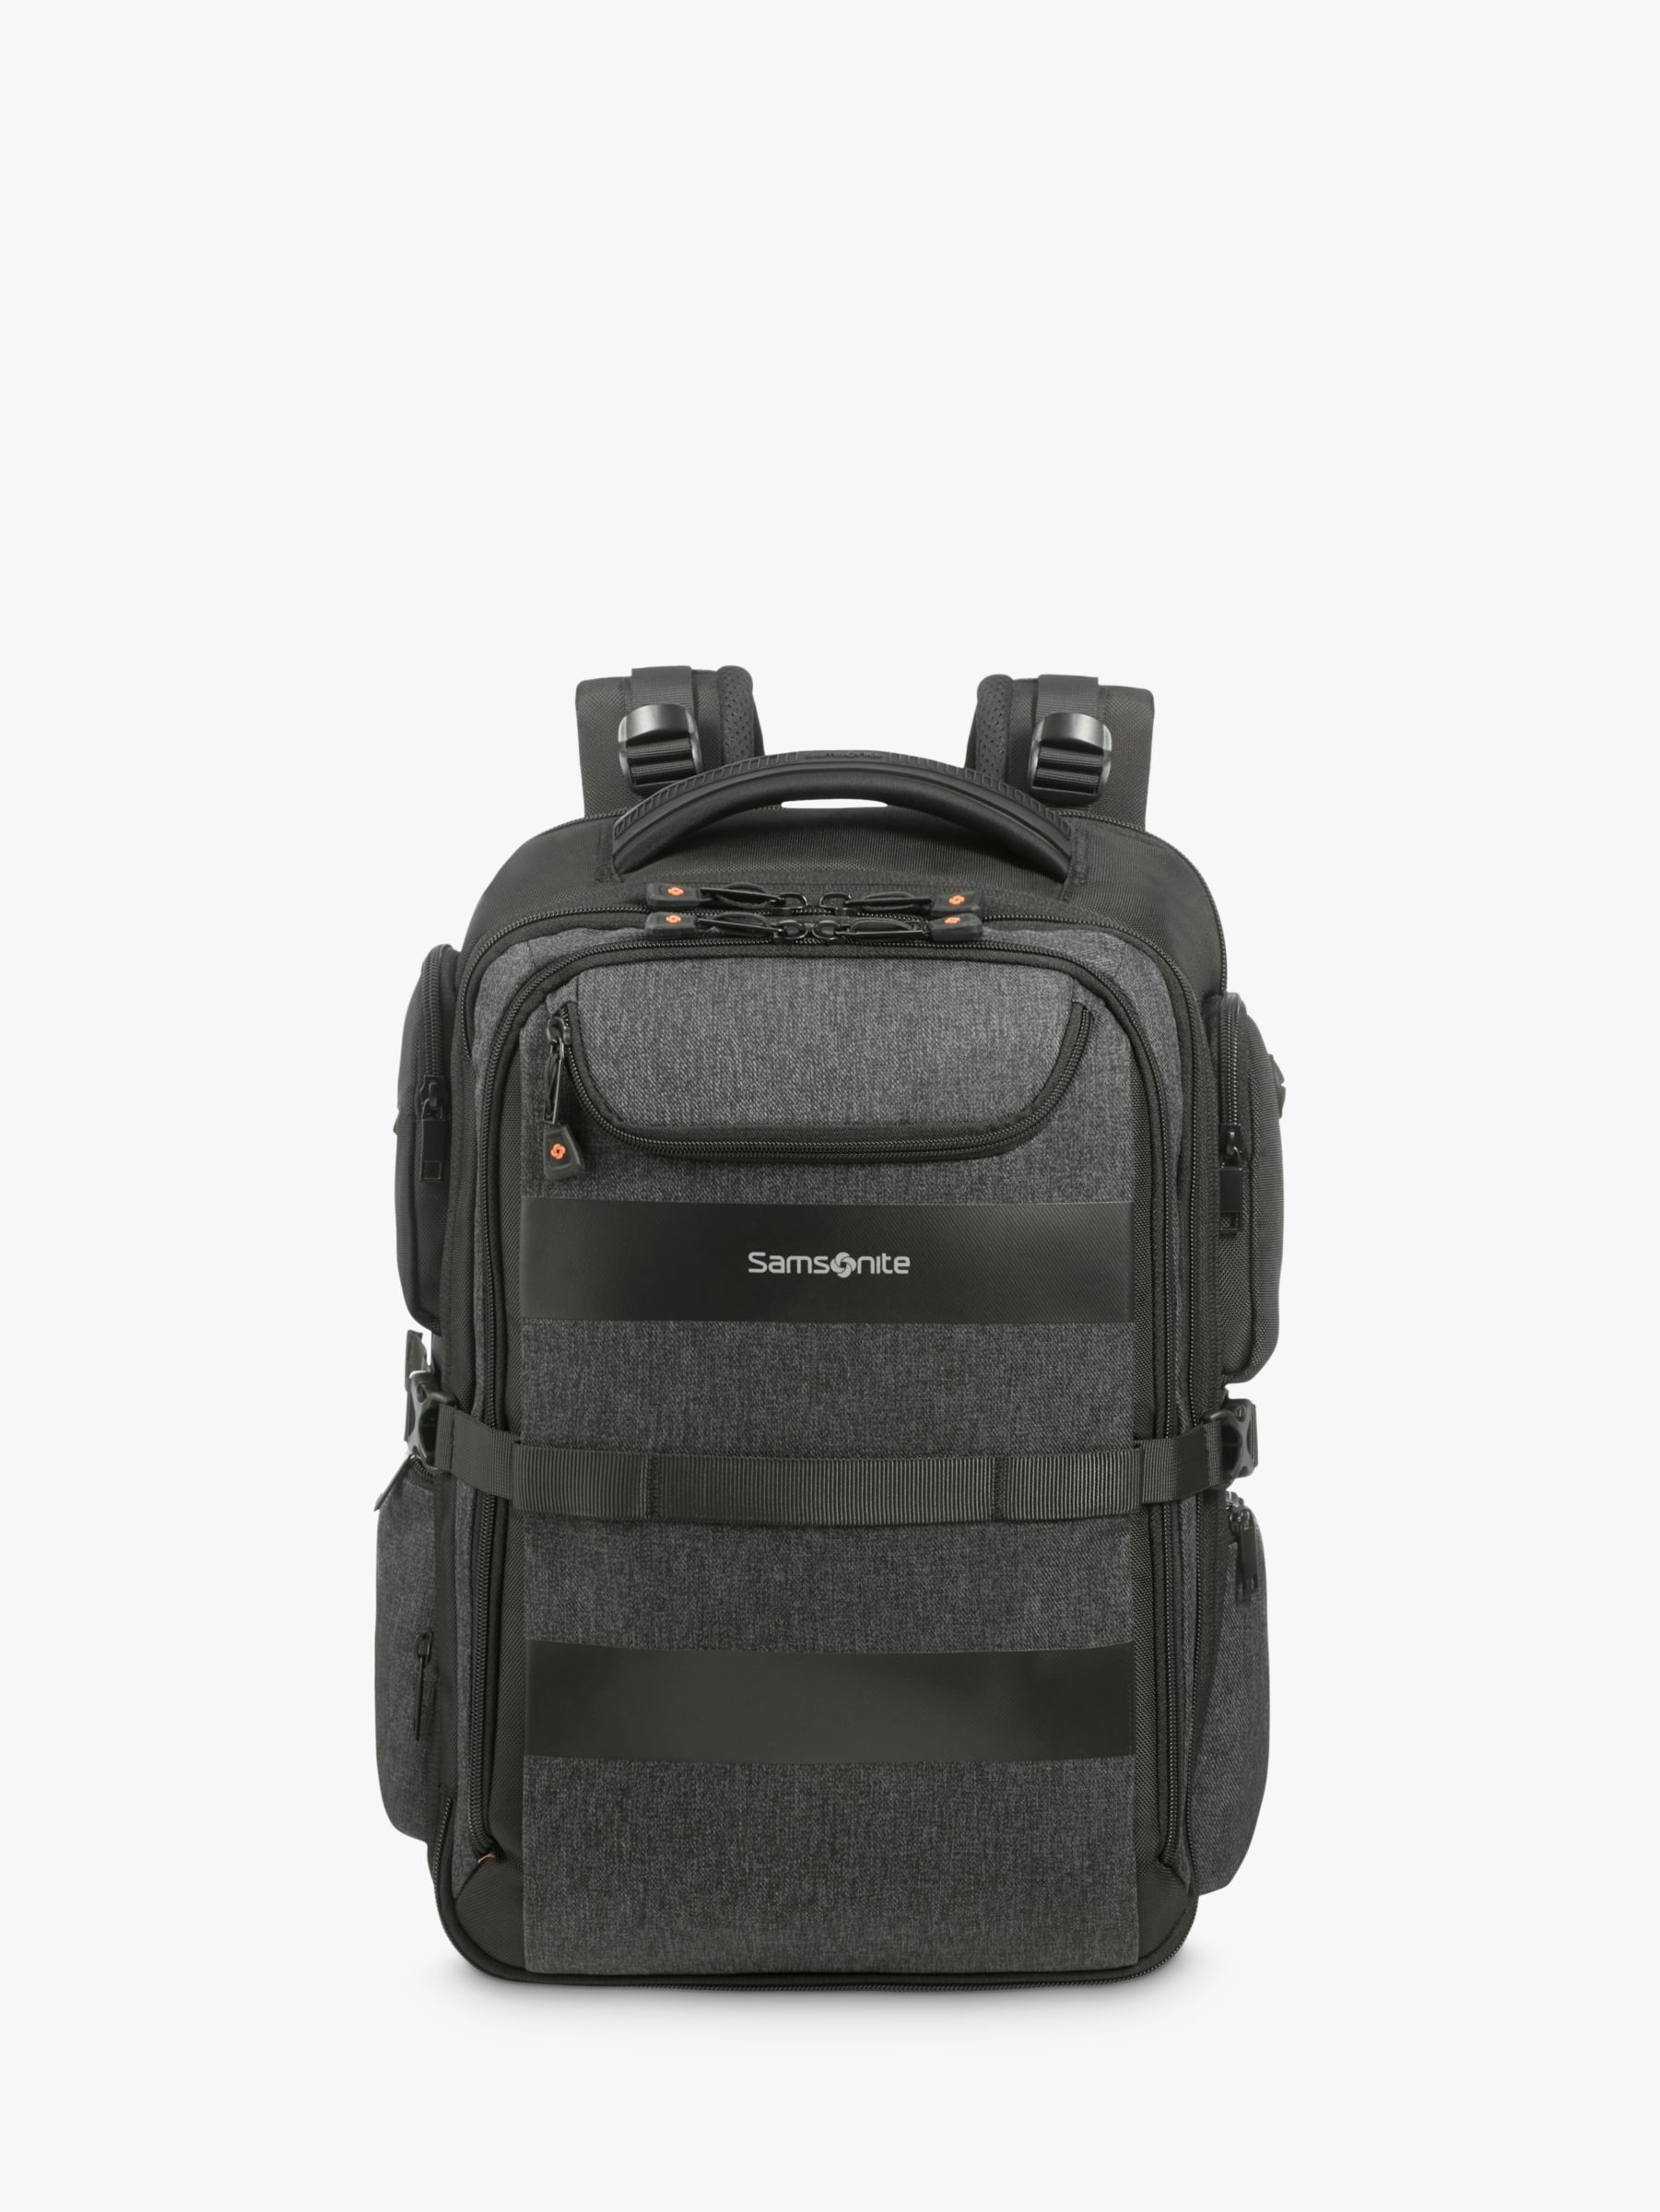 Samsonite Samsonite Bleisure 15.6 Overnight Backpack, Anthracite